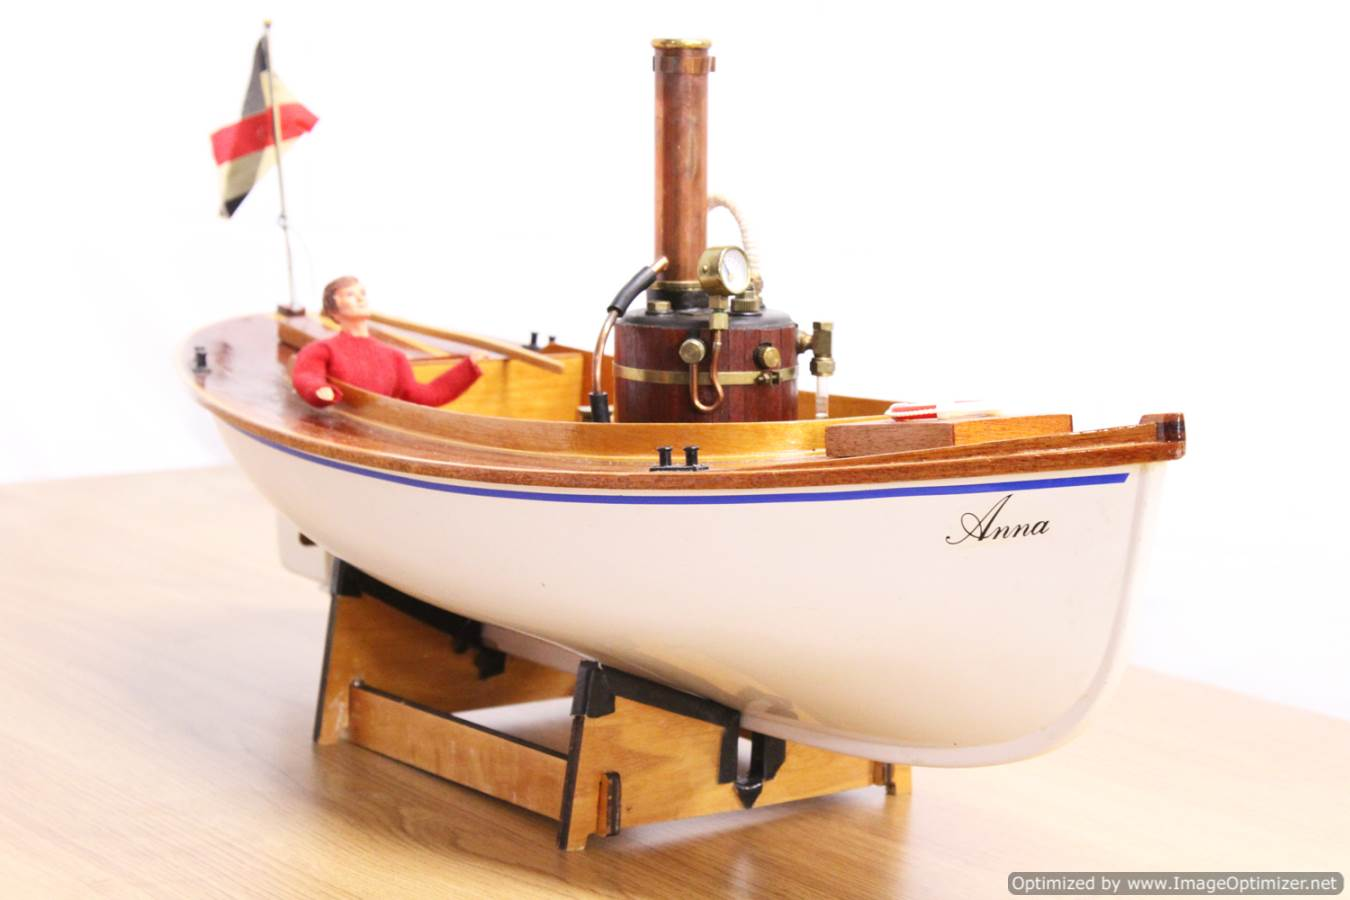 test anna-cheddar-steam-boat-live-steam-model-for-sale-01-optimized